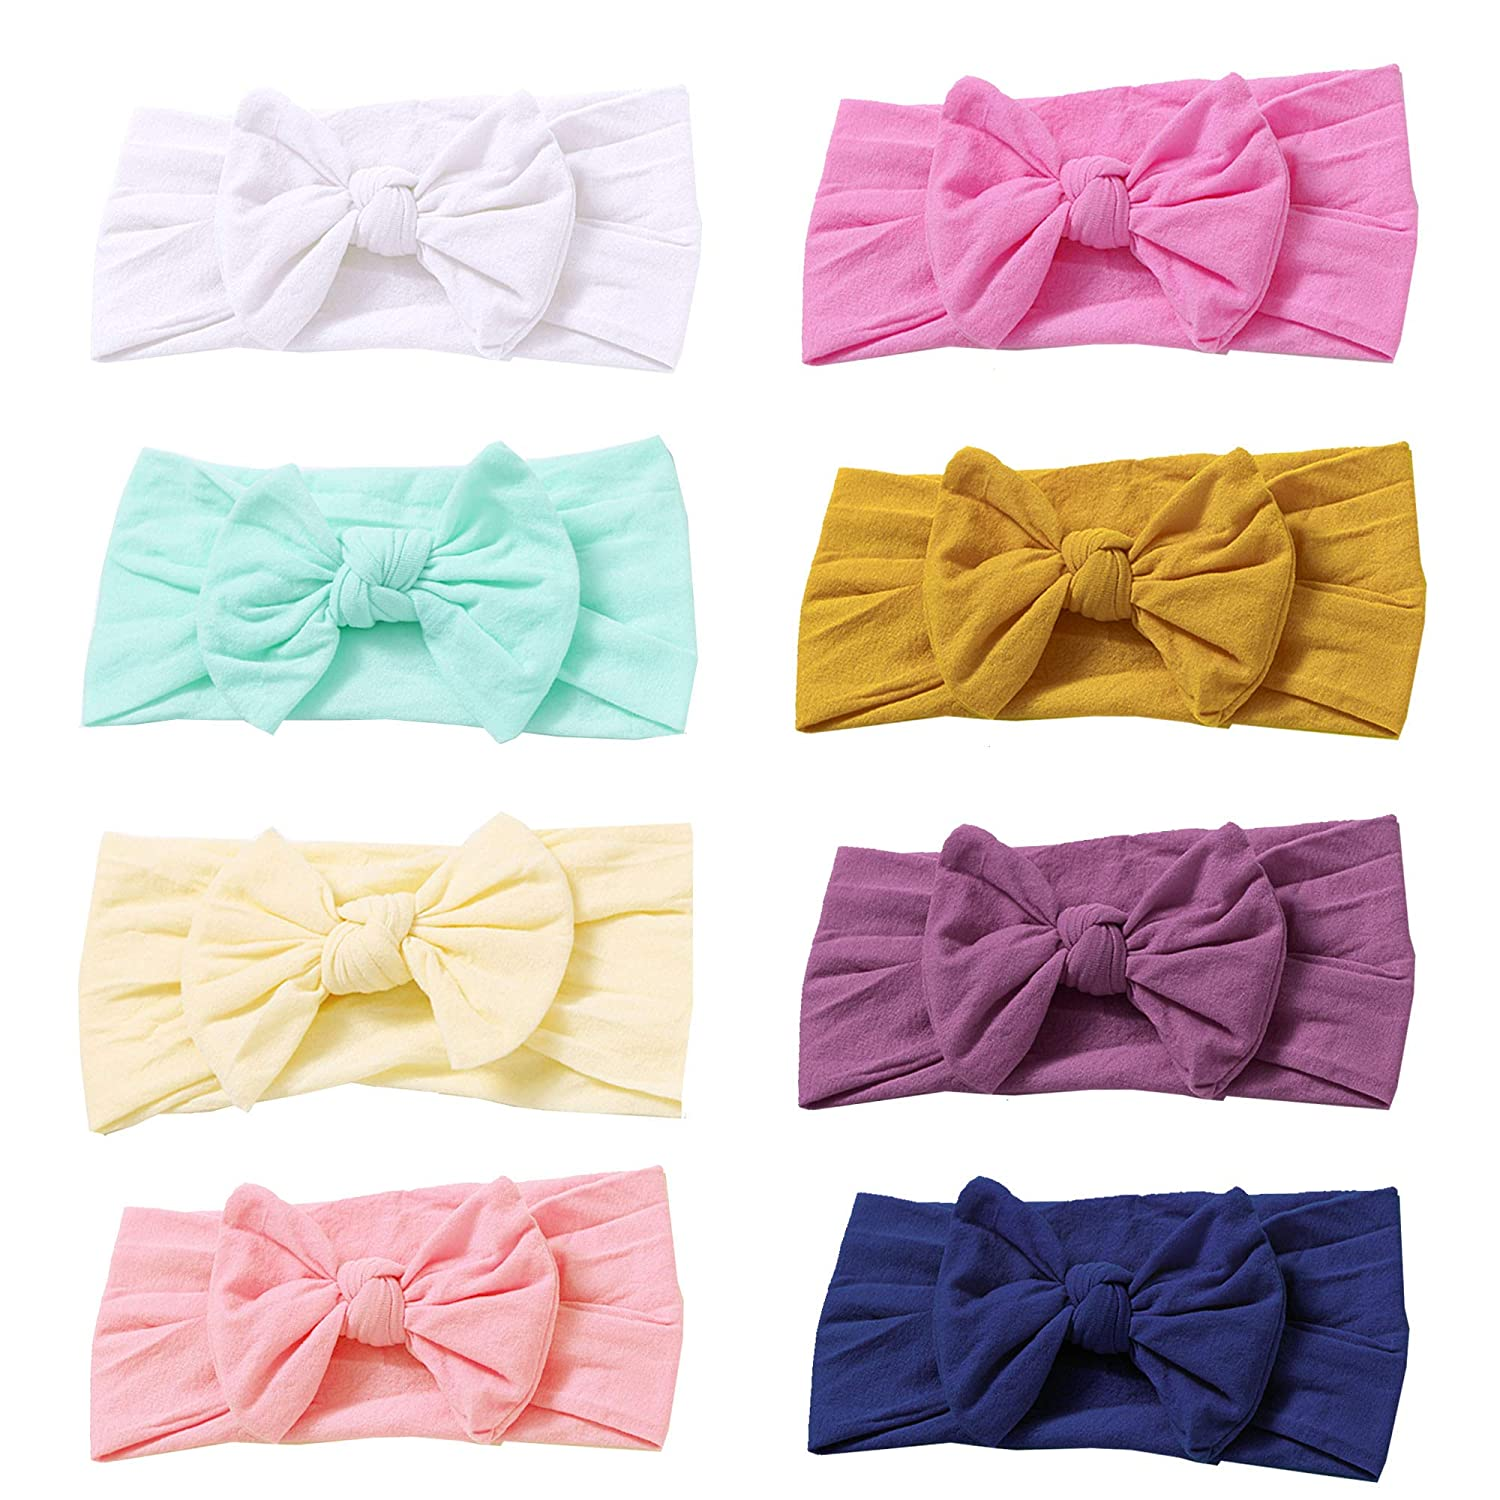 Prohouse 8PCS Super Stretchy Knot Nylon Baby Headbands For Newborn Baby Girls Infant Toddlers Kids 729129346850